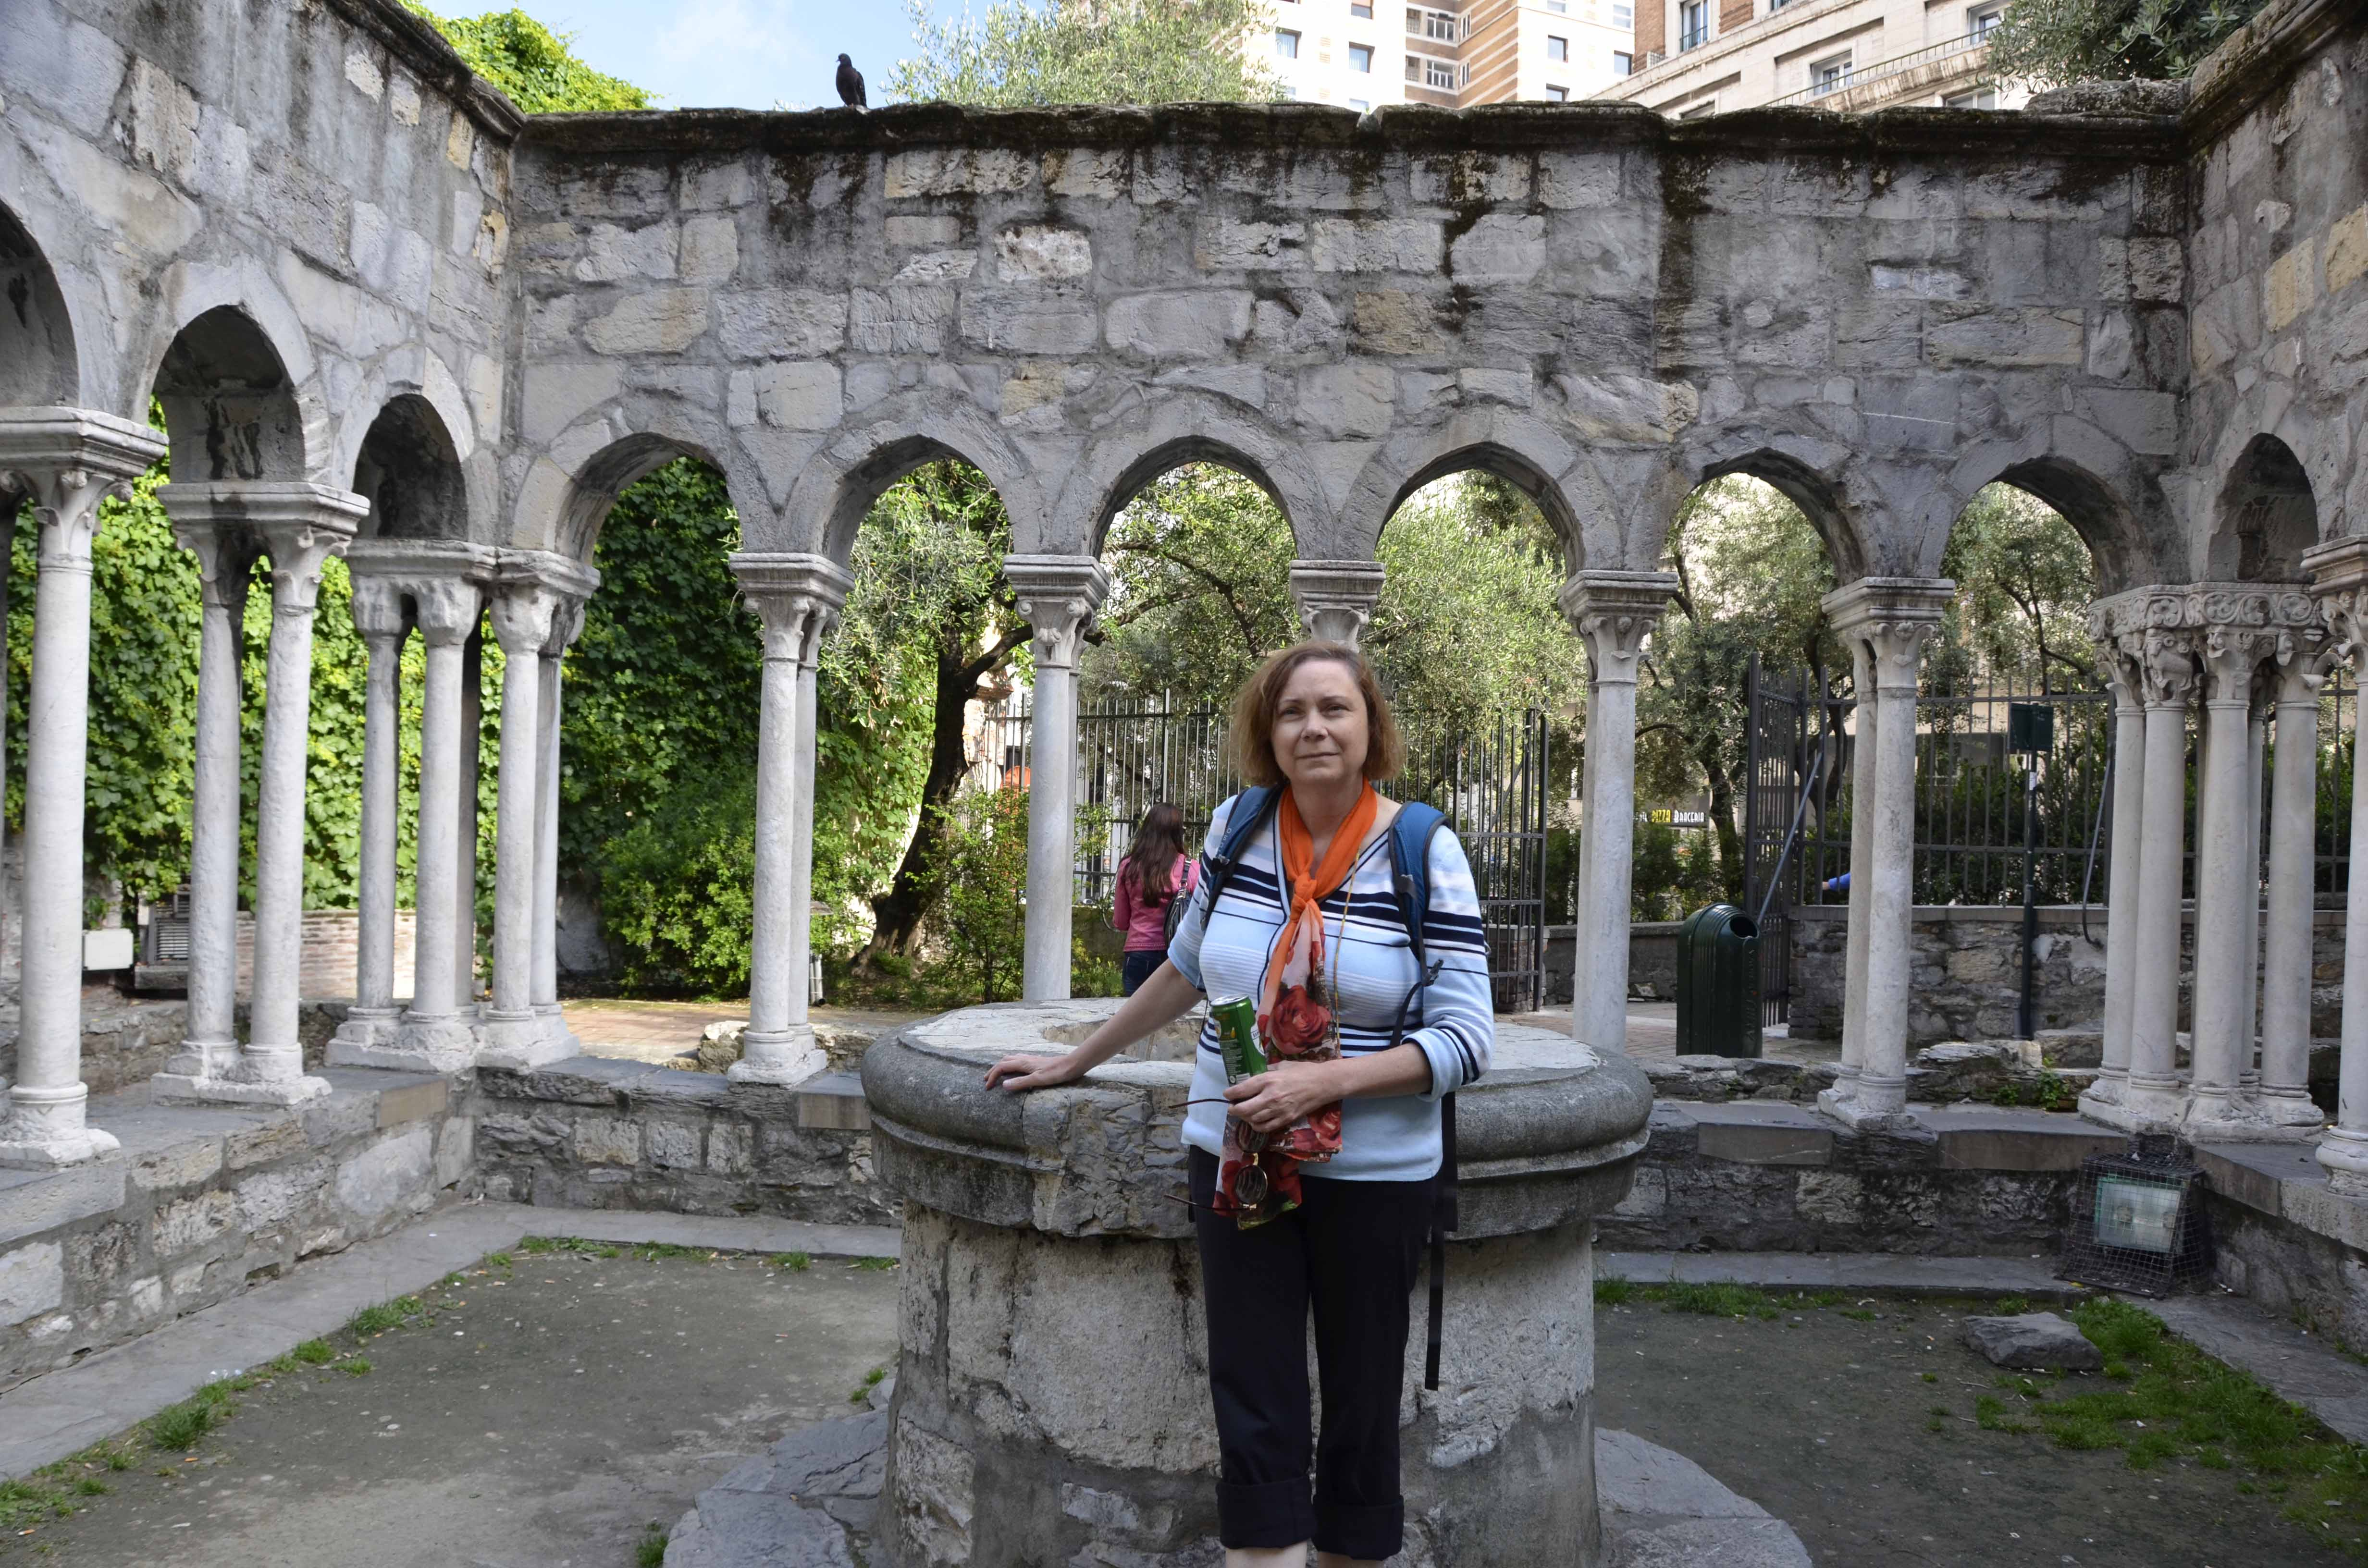 Sant'Andrea - a small garden remains of a convent that stood next to Christopher Columbus home.